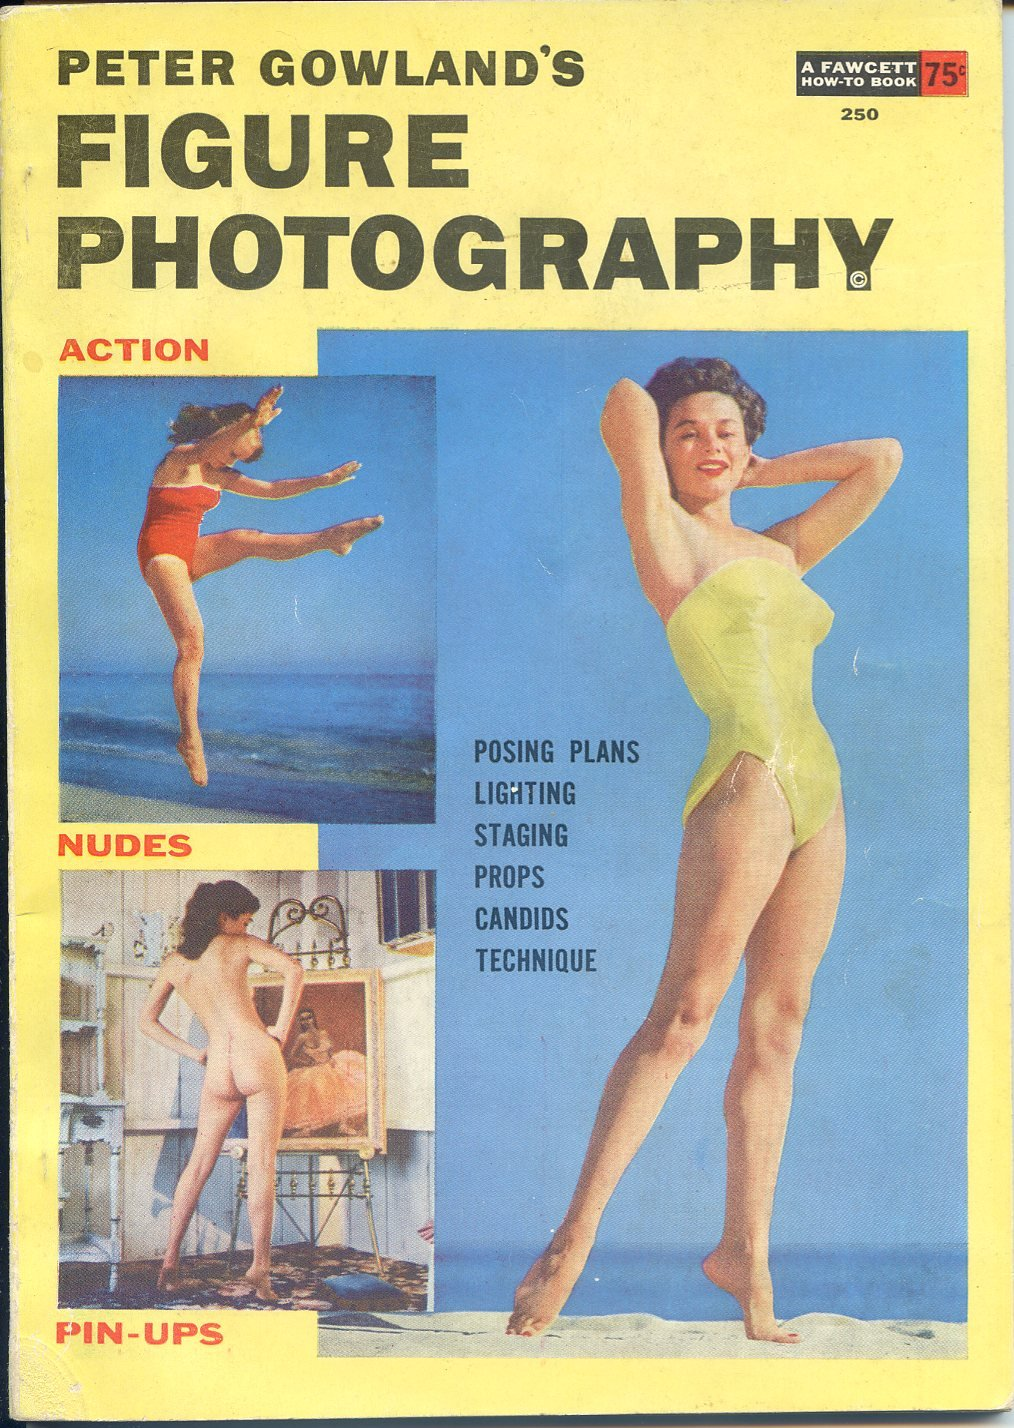 Figure Photography - Action, Nudes, Pin-ups by Peter Gowland ©1954